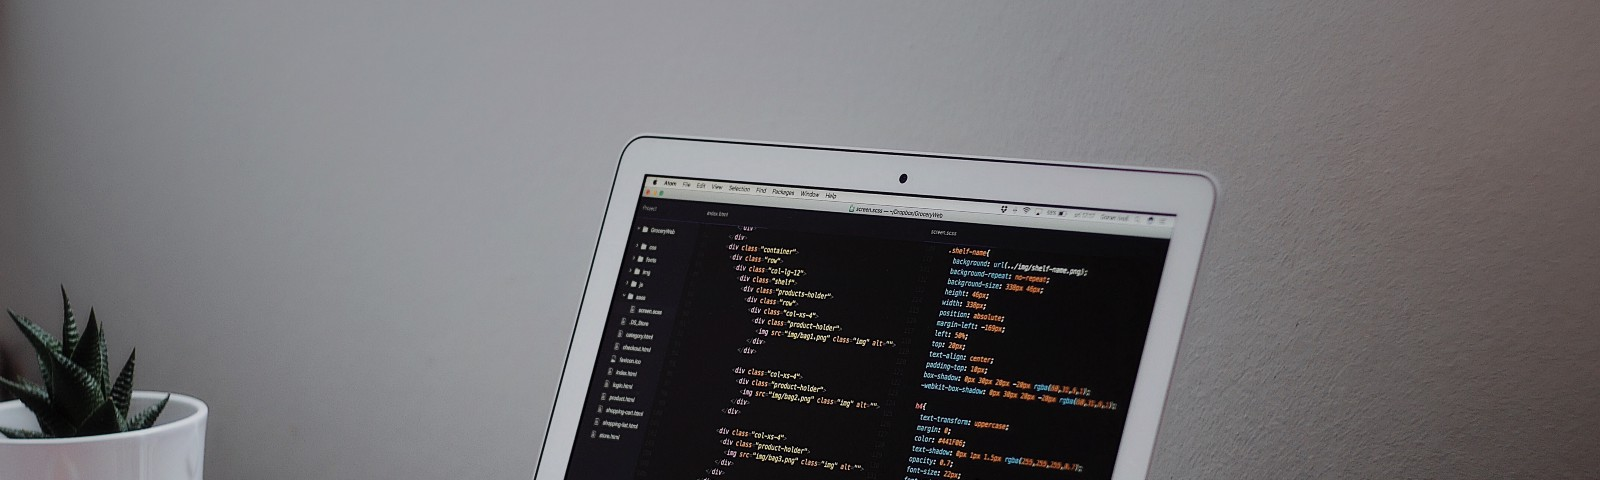 Image of laptop with code.